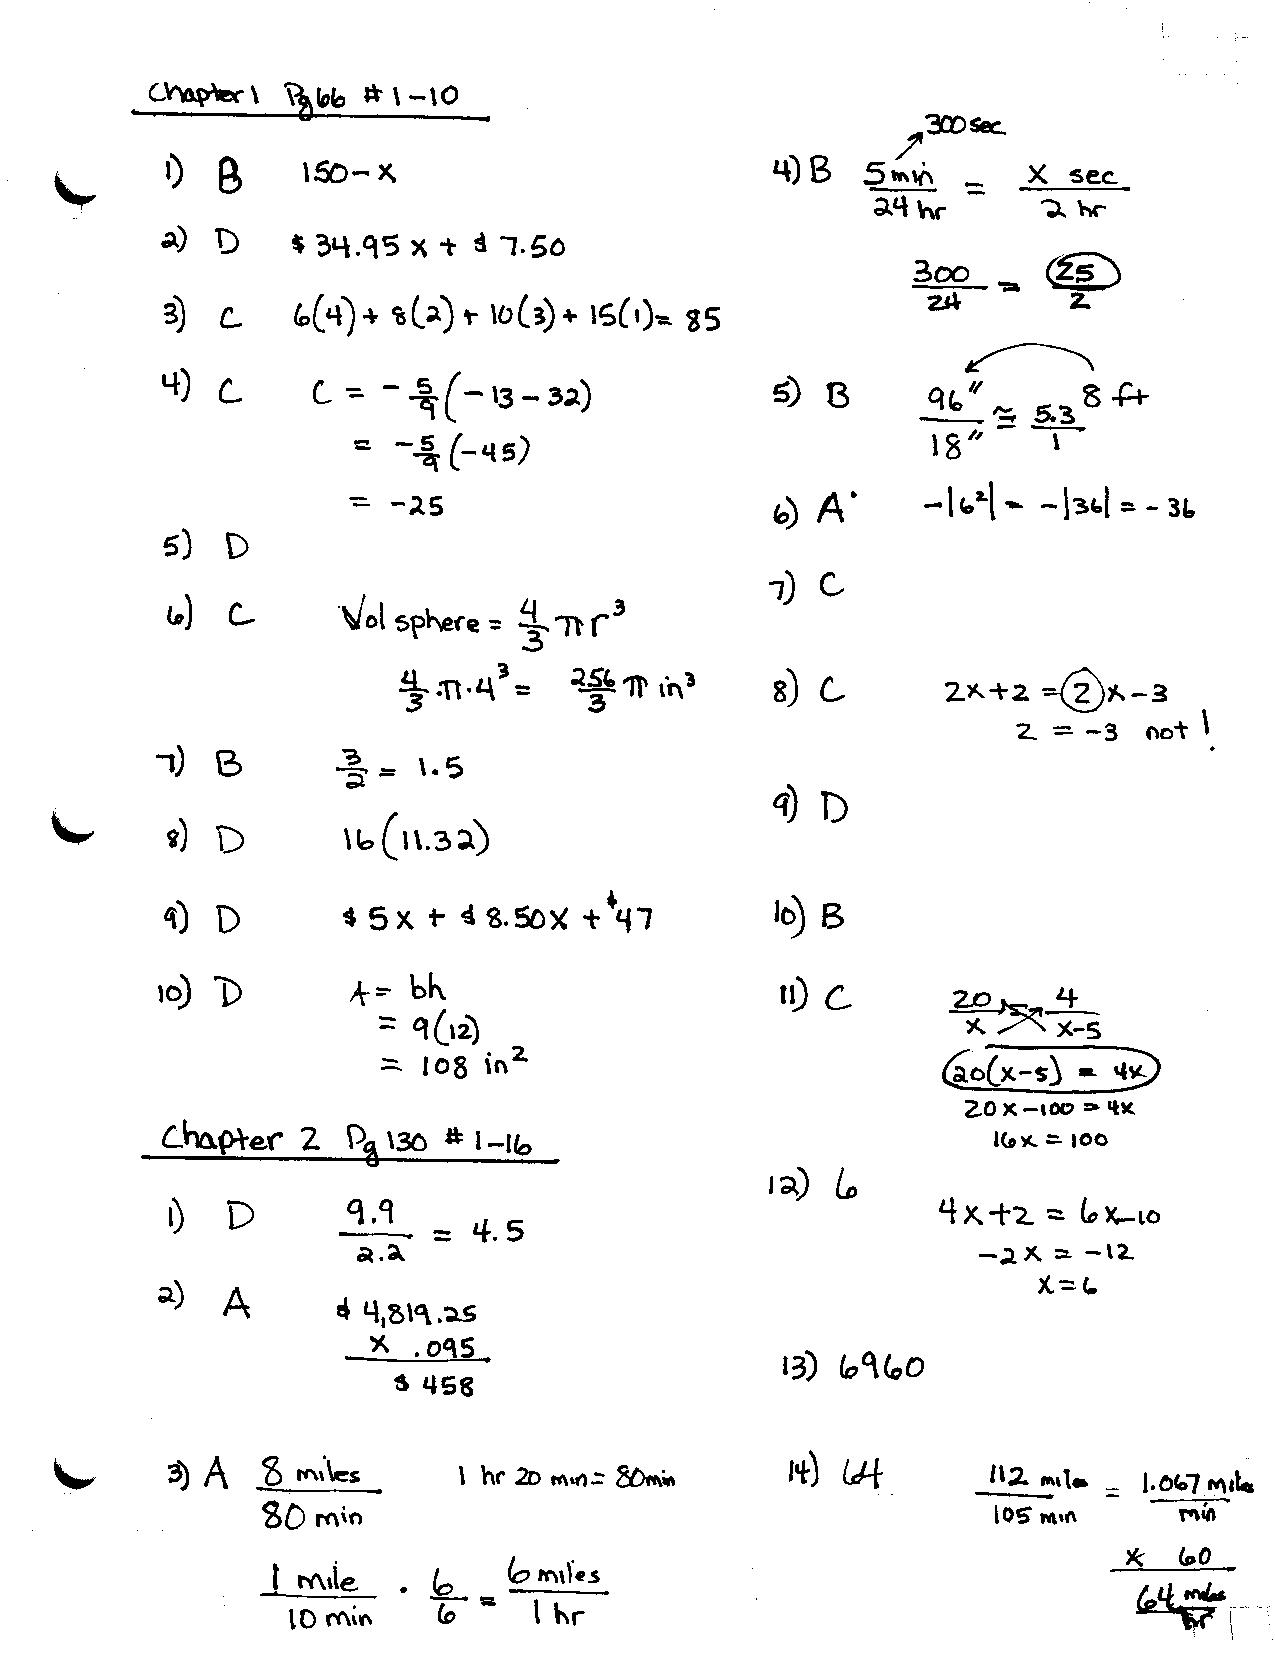 Holt Environmental Science Worksheet Chapter 1